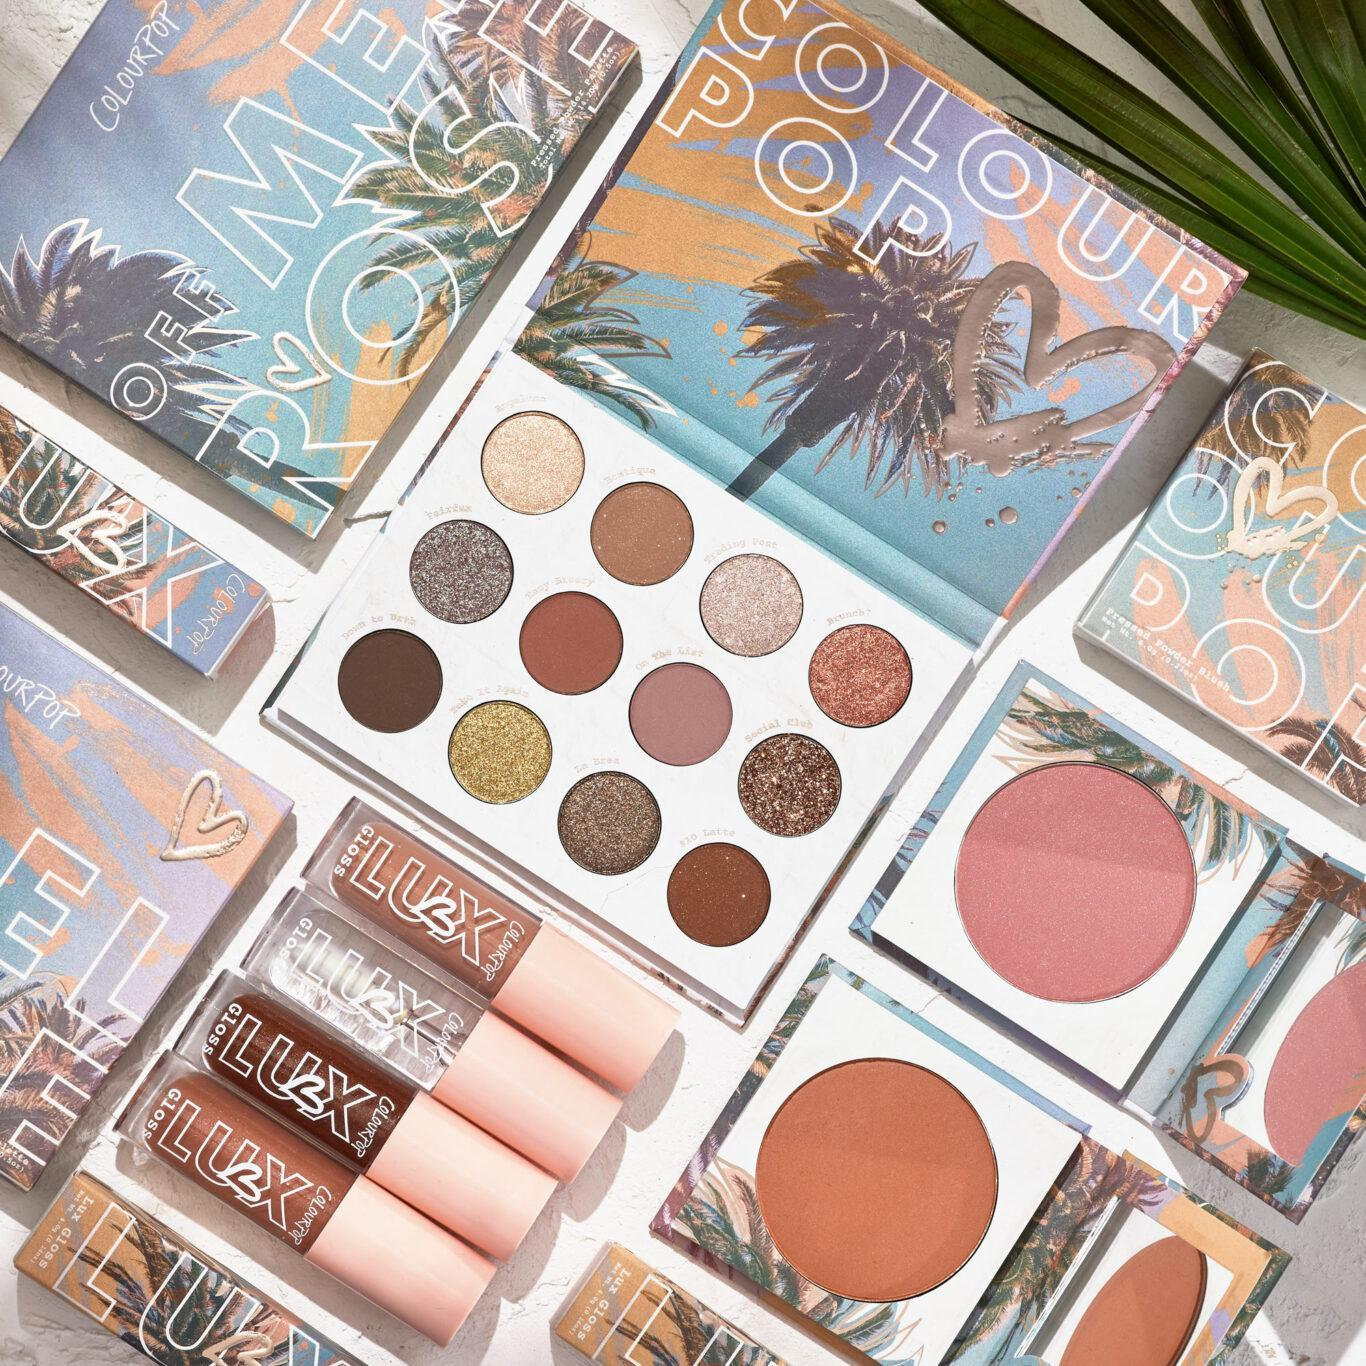 ColoutPop Cosmetics Melrose Collection Promo Post Cover